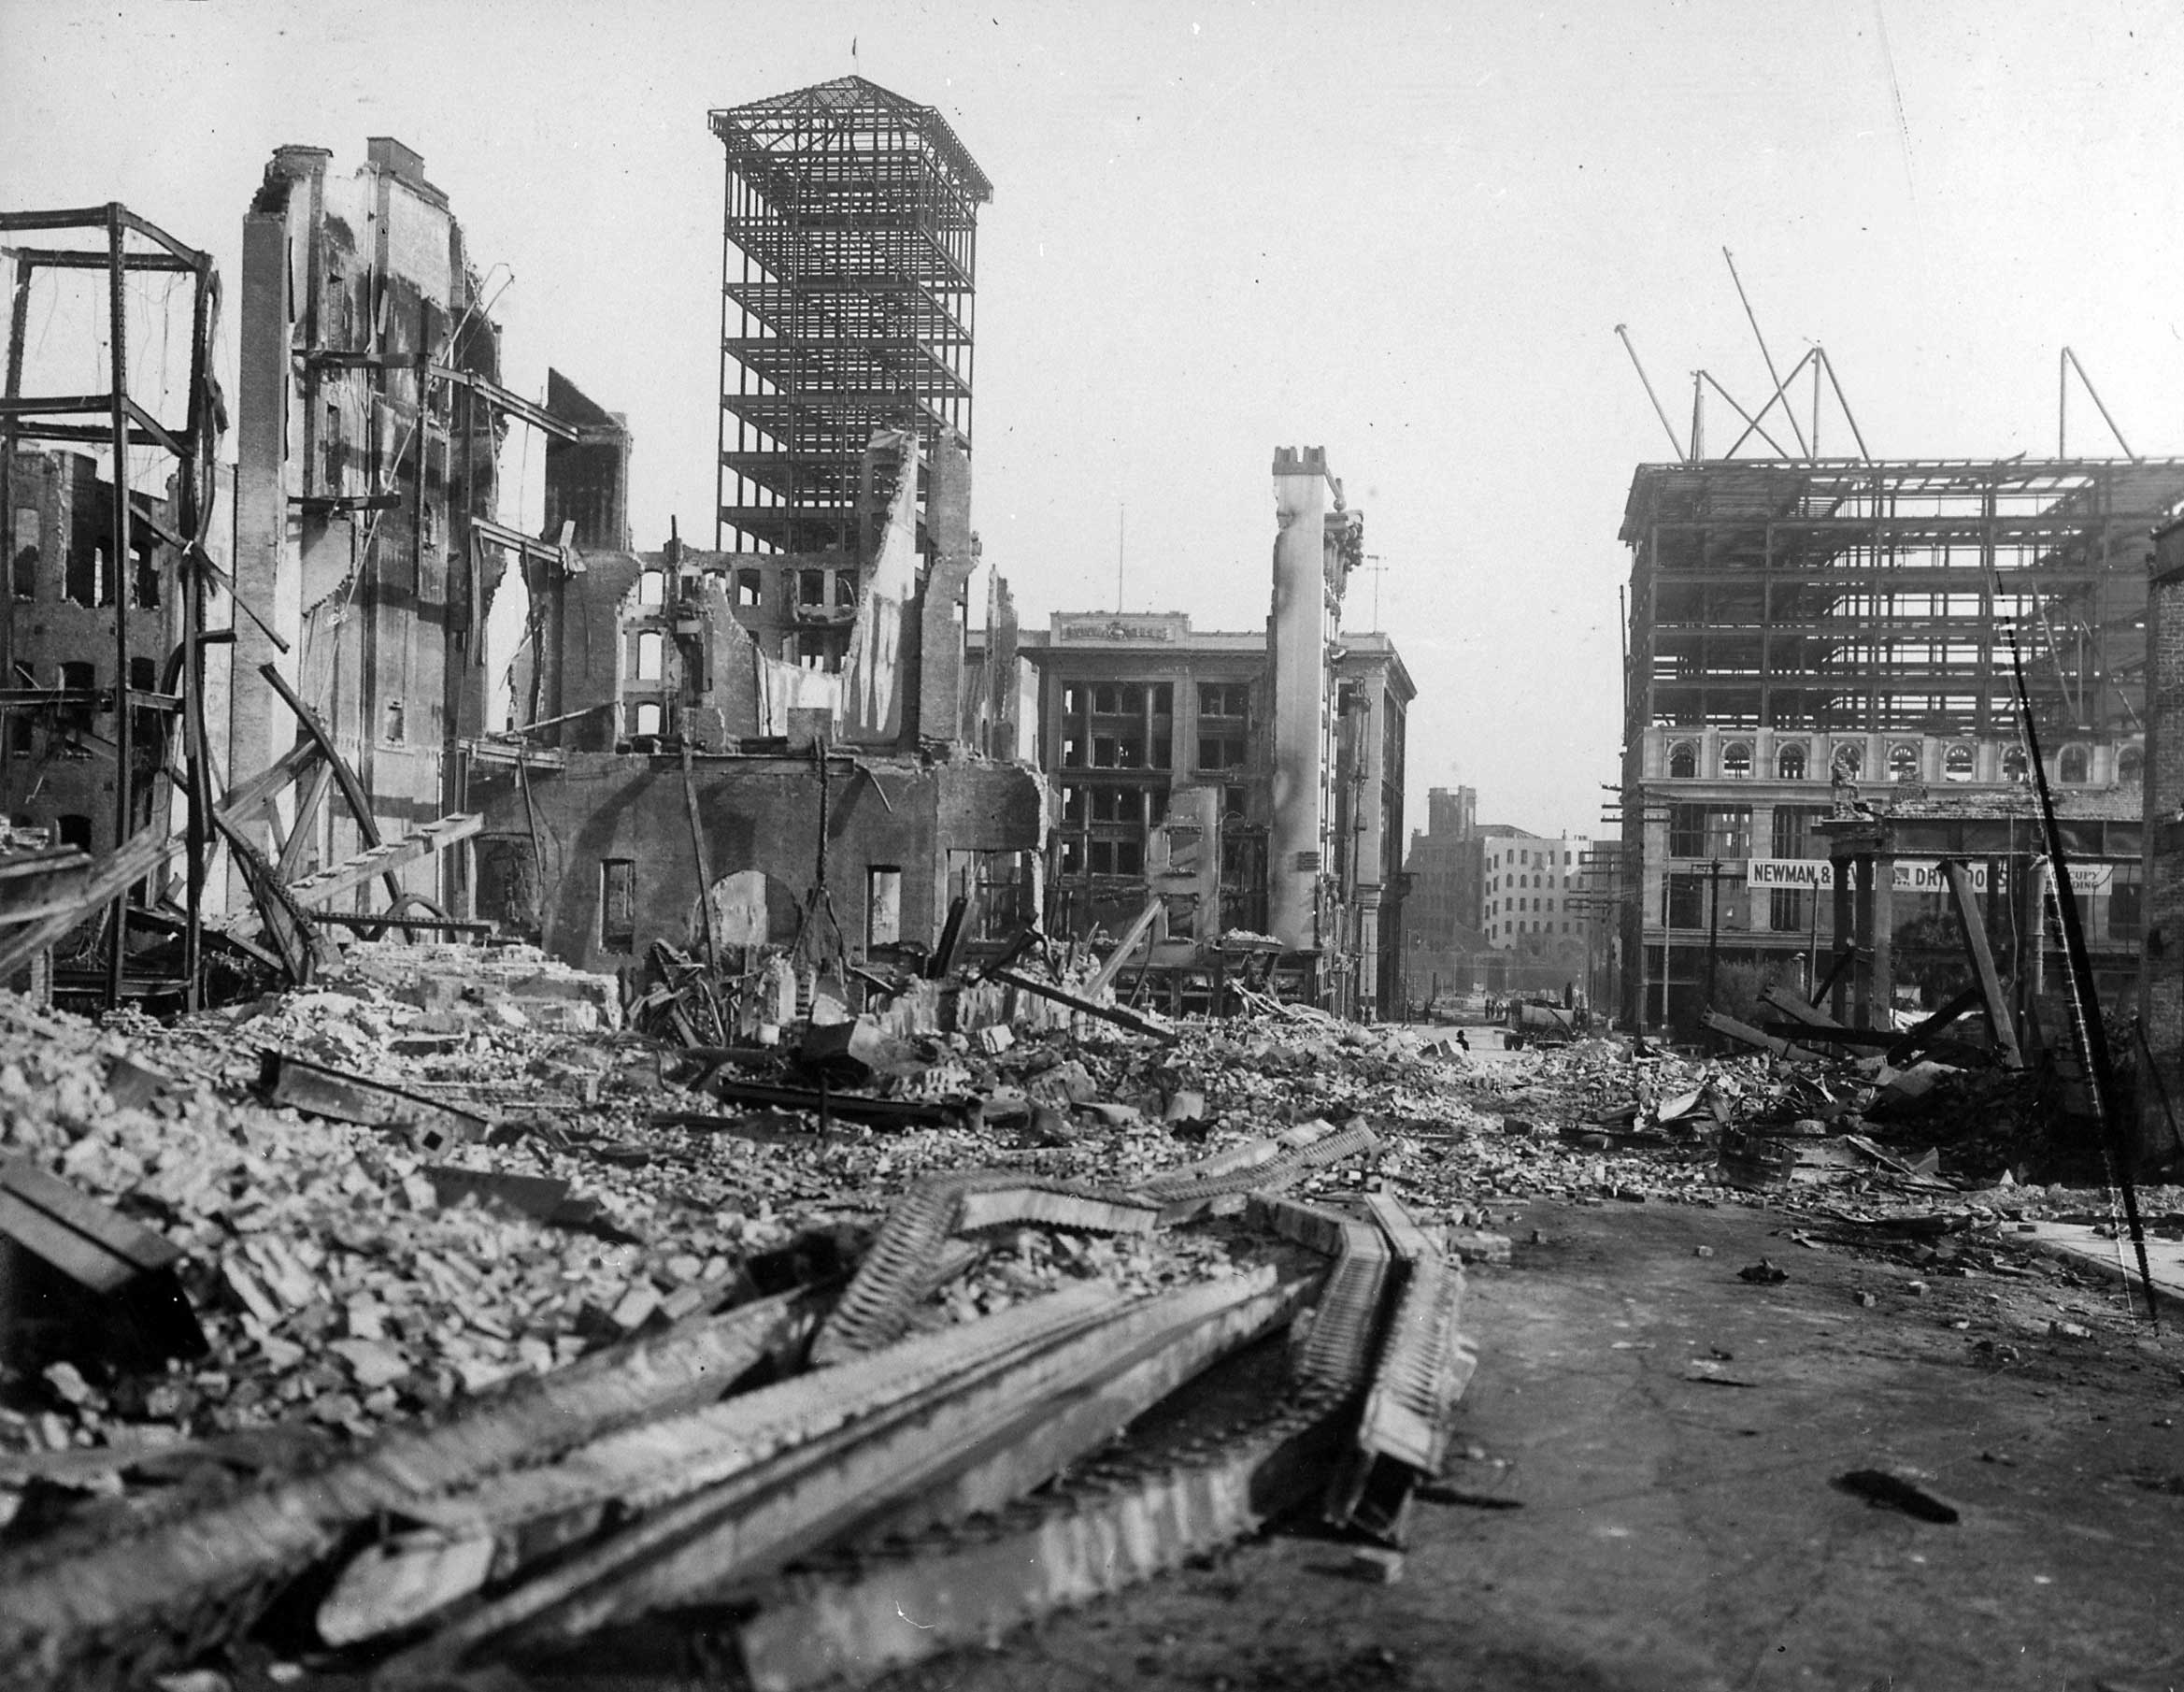 A Line from Linda: San Francisco Earthquake by Numbers